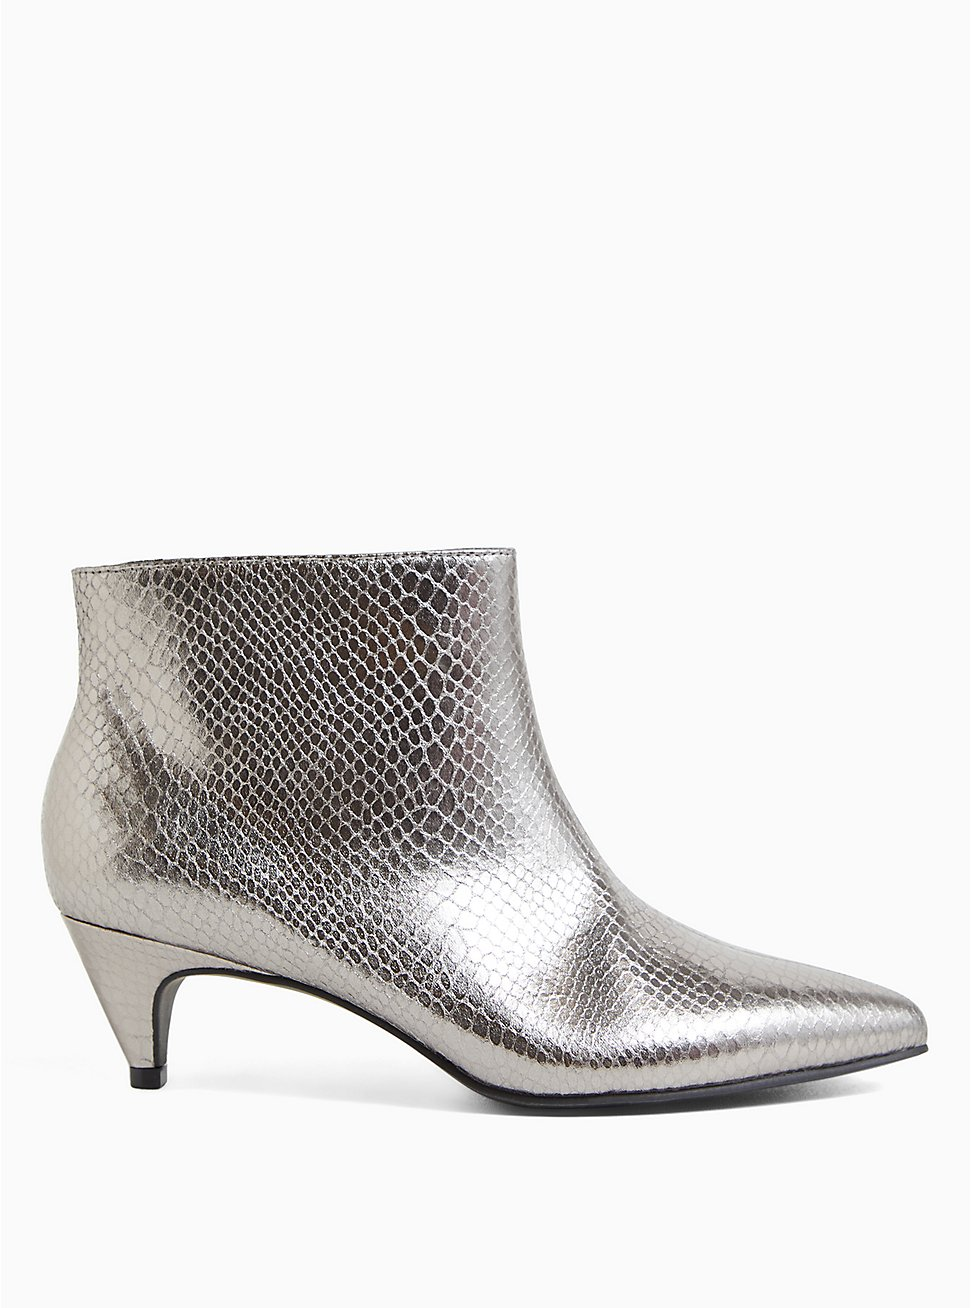 Pewter Snakeskin Faux Leather Kitten Heel Bootie (WW), PEWTER GREY, hi-res